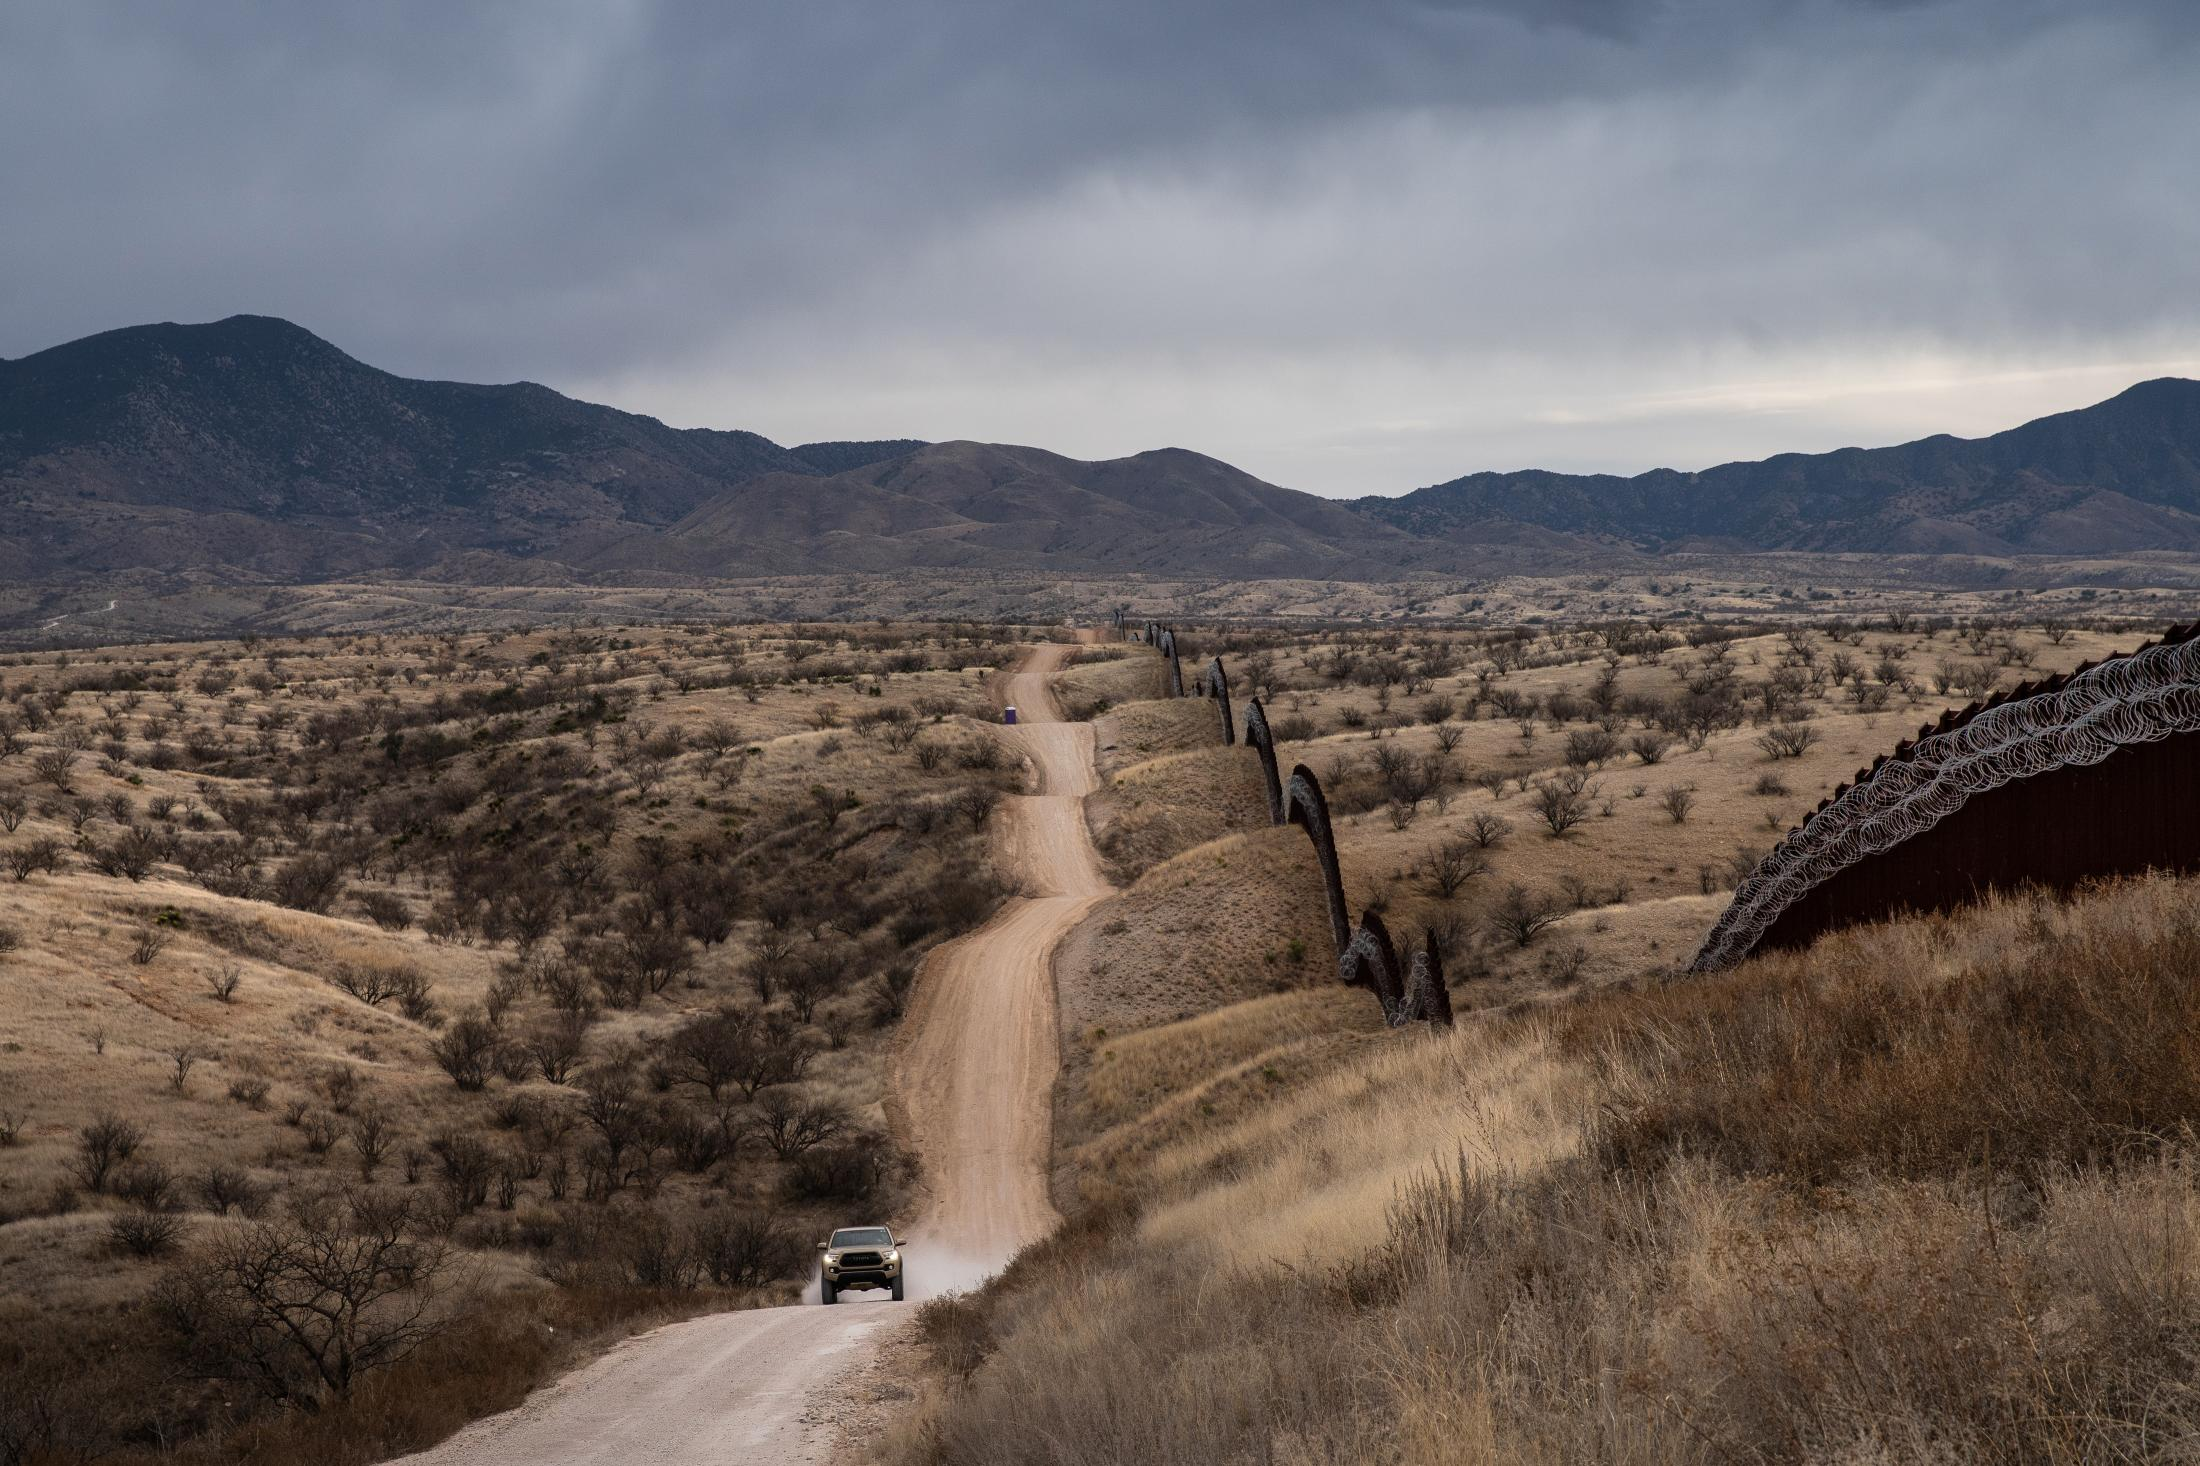 A truck speeds by the US border fence covered in barbed wire concertina separating the US and Mexico, at the outskirts of Nogales, Arizona, on February 9, 2019.